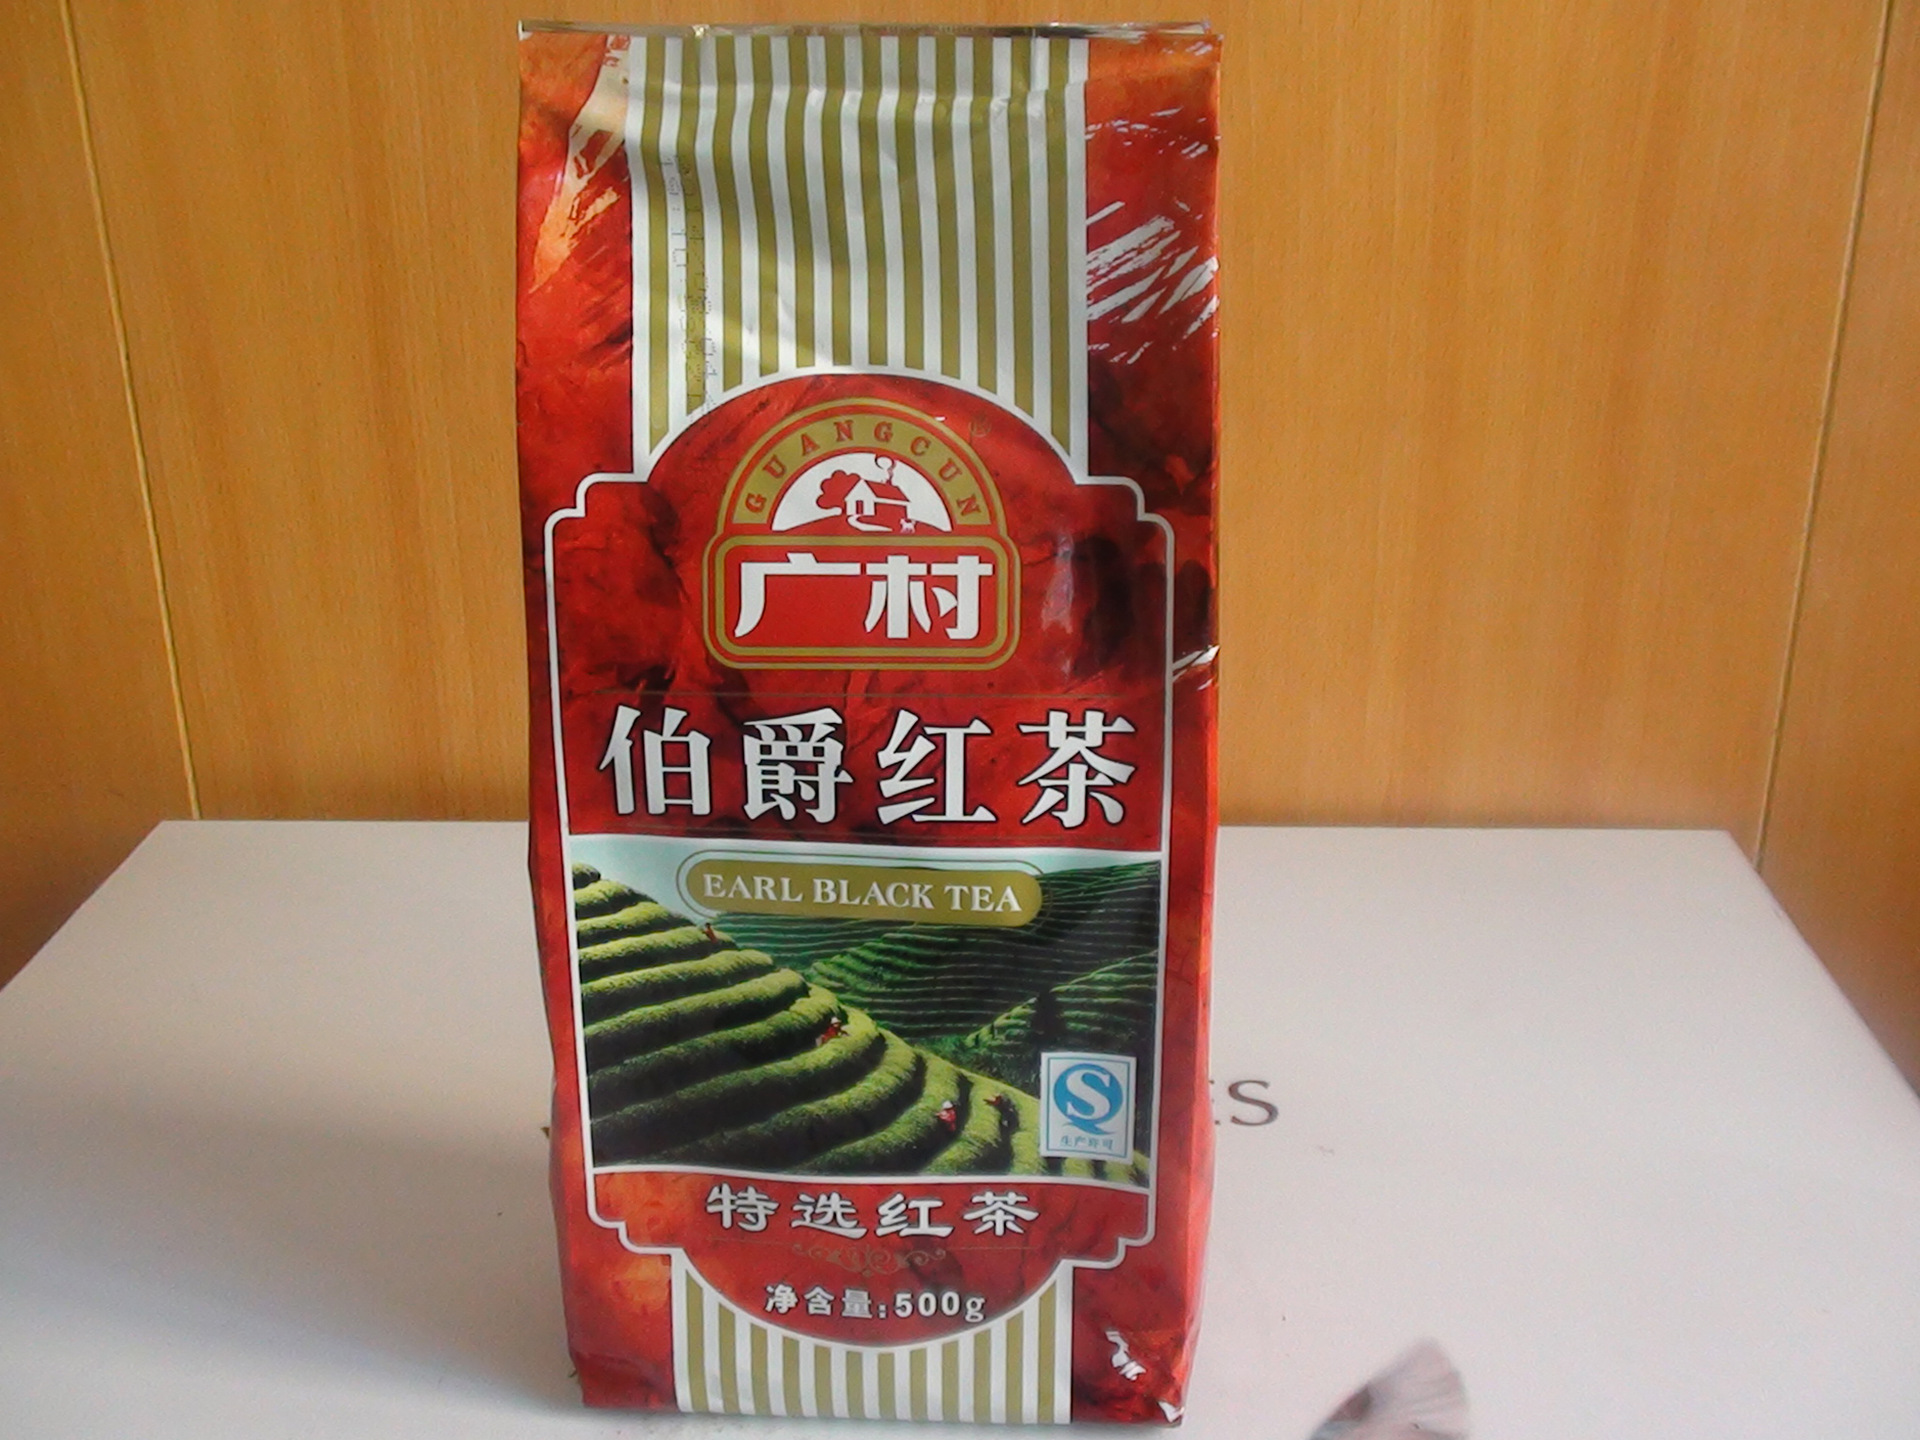 2015 Special Offer Promotion Bag Lapsang Souchong Wide Village Earl Black Tea 500g Raw Materials Wholesale Commercial Household